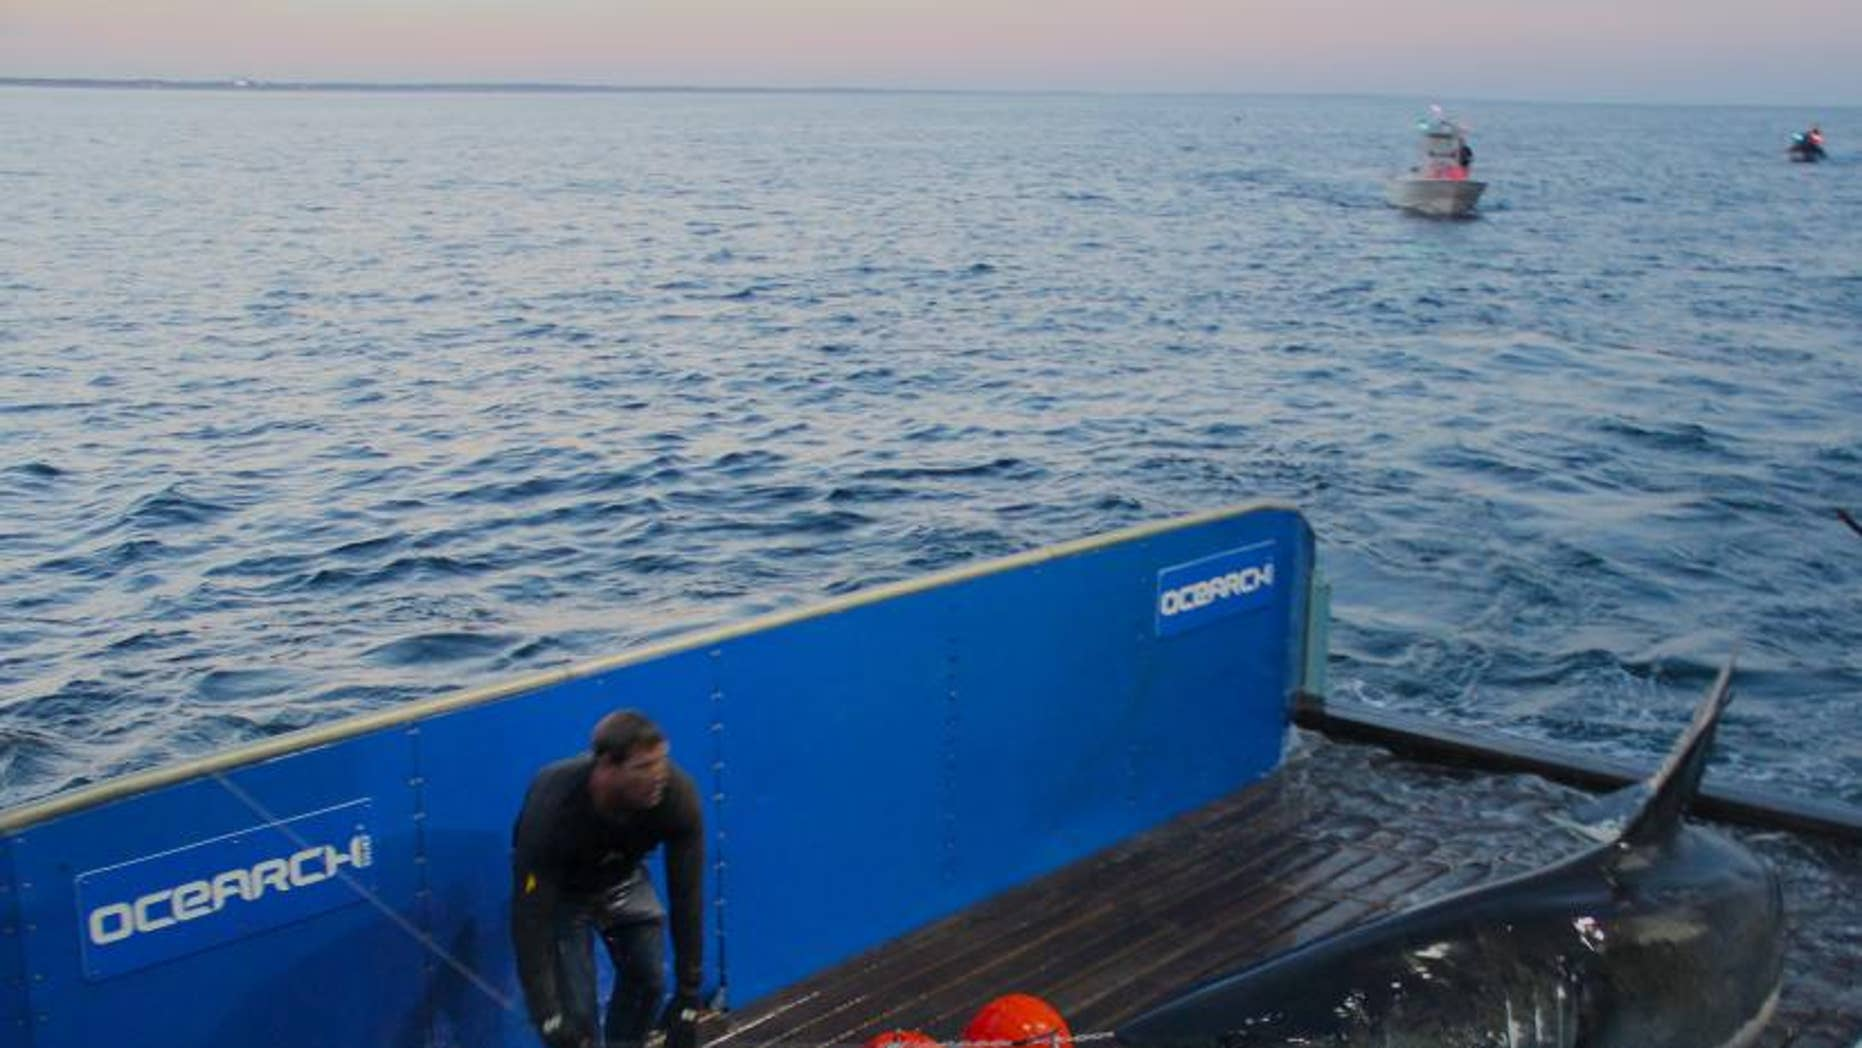 Great white shark Mary Lee has travelled more than 34,000 miles since September 2012.